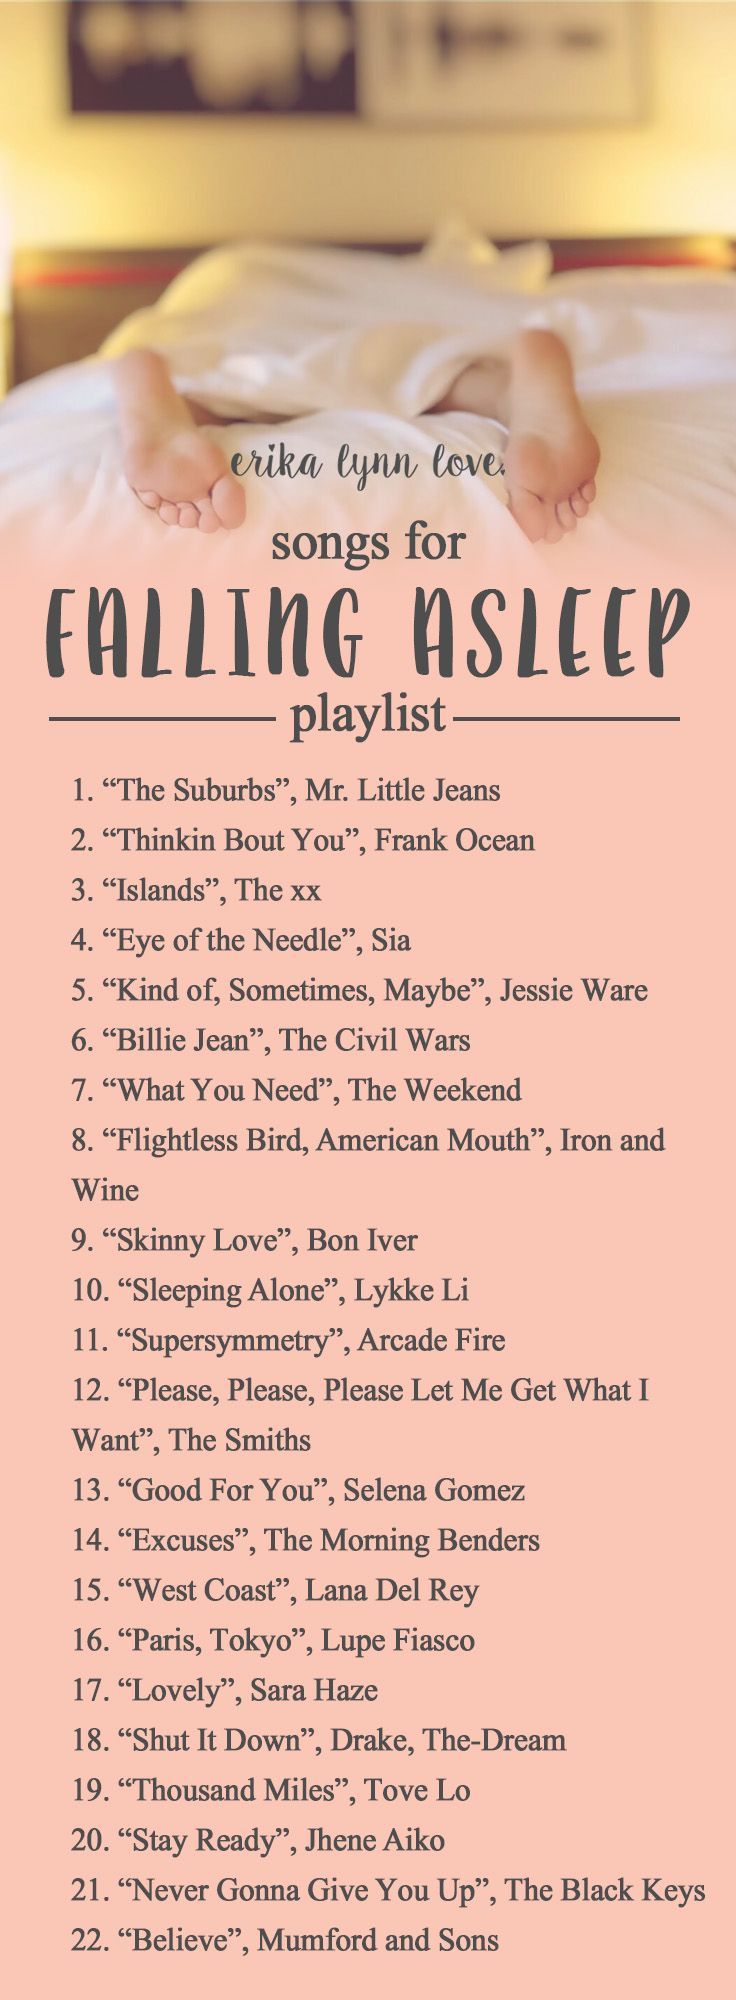 Need help #sleeping tonight? These #songs might help you get some rest! #playlist #sleep